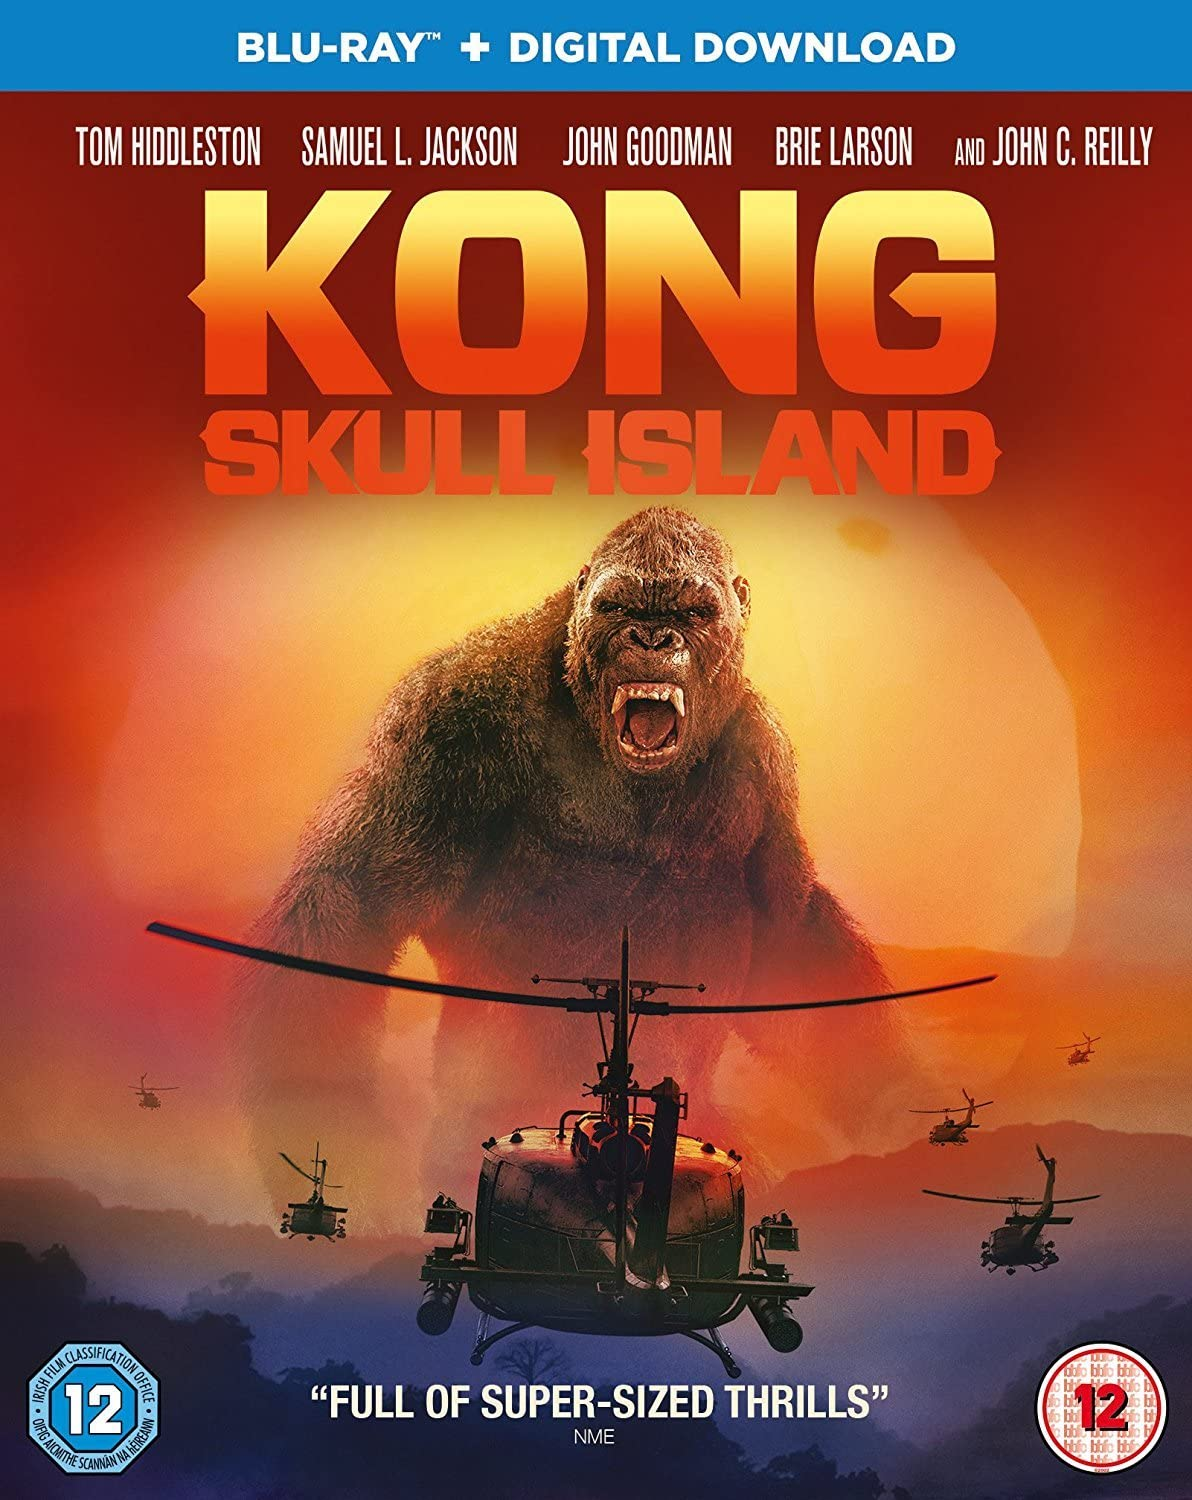 Kong: Skull Island 2017 Dual Audio Hindi ORG 720p BluRay 850MB ESub Download